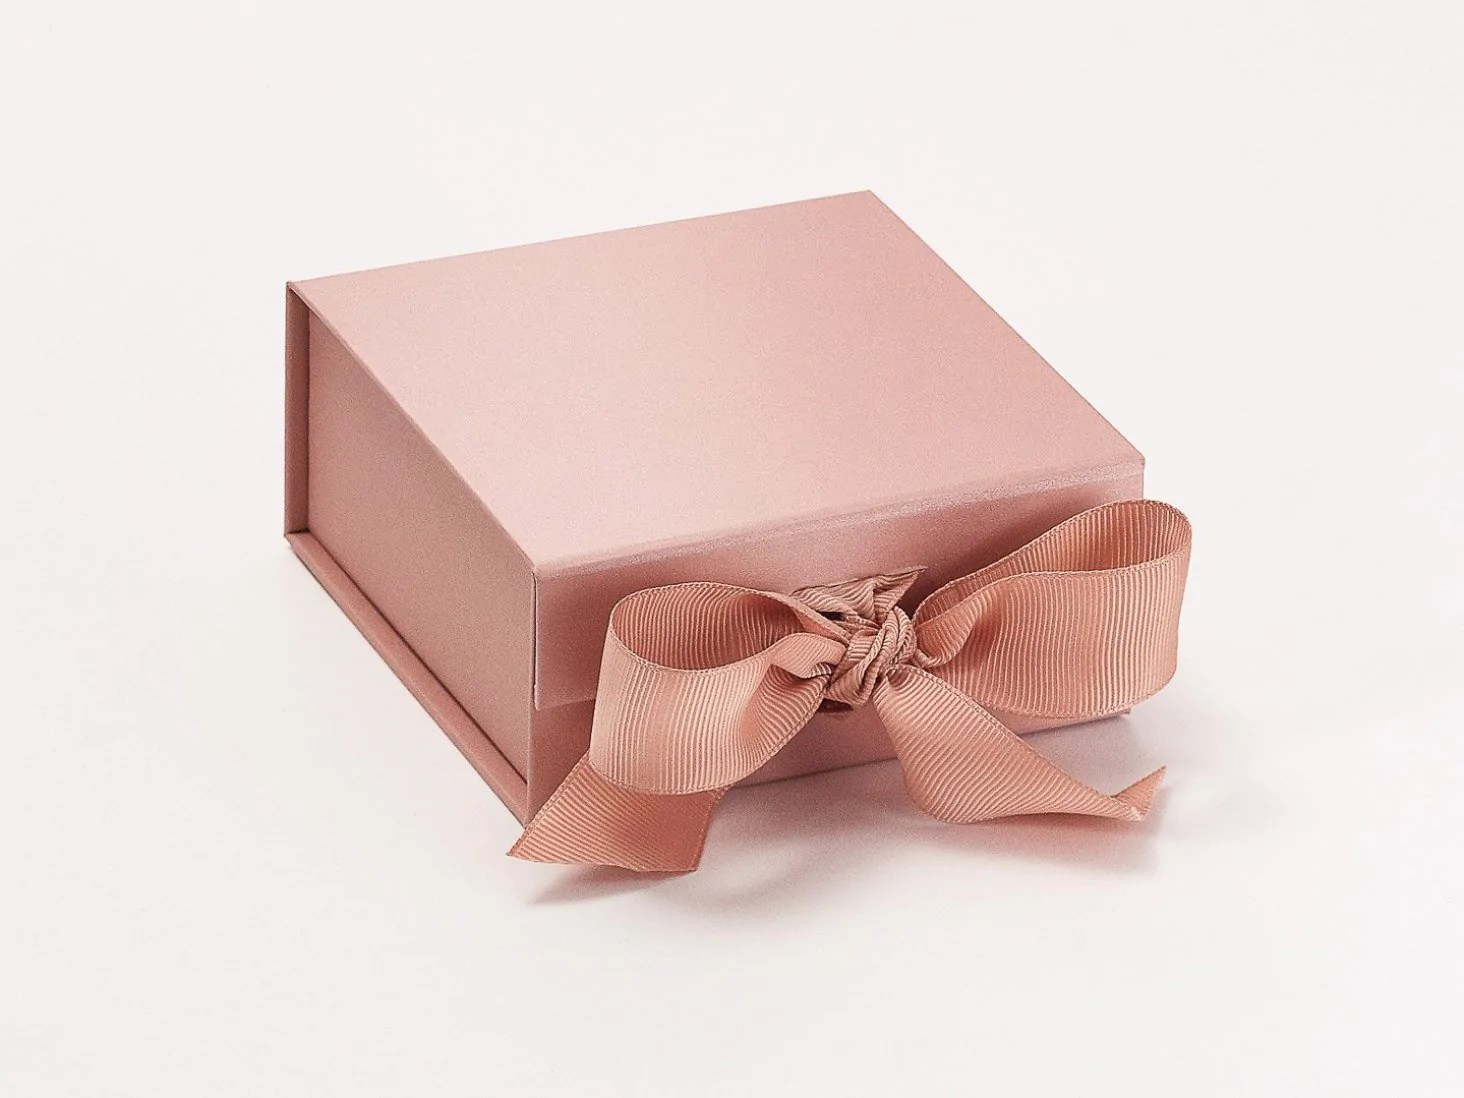 Wholesale Jewelry Packaging Rose Gold Small Gift Boxes With Fixed Grosgrain Ribbon